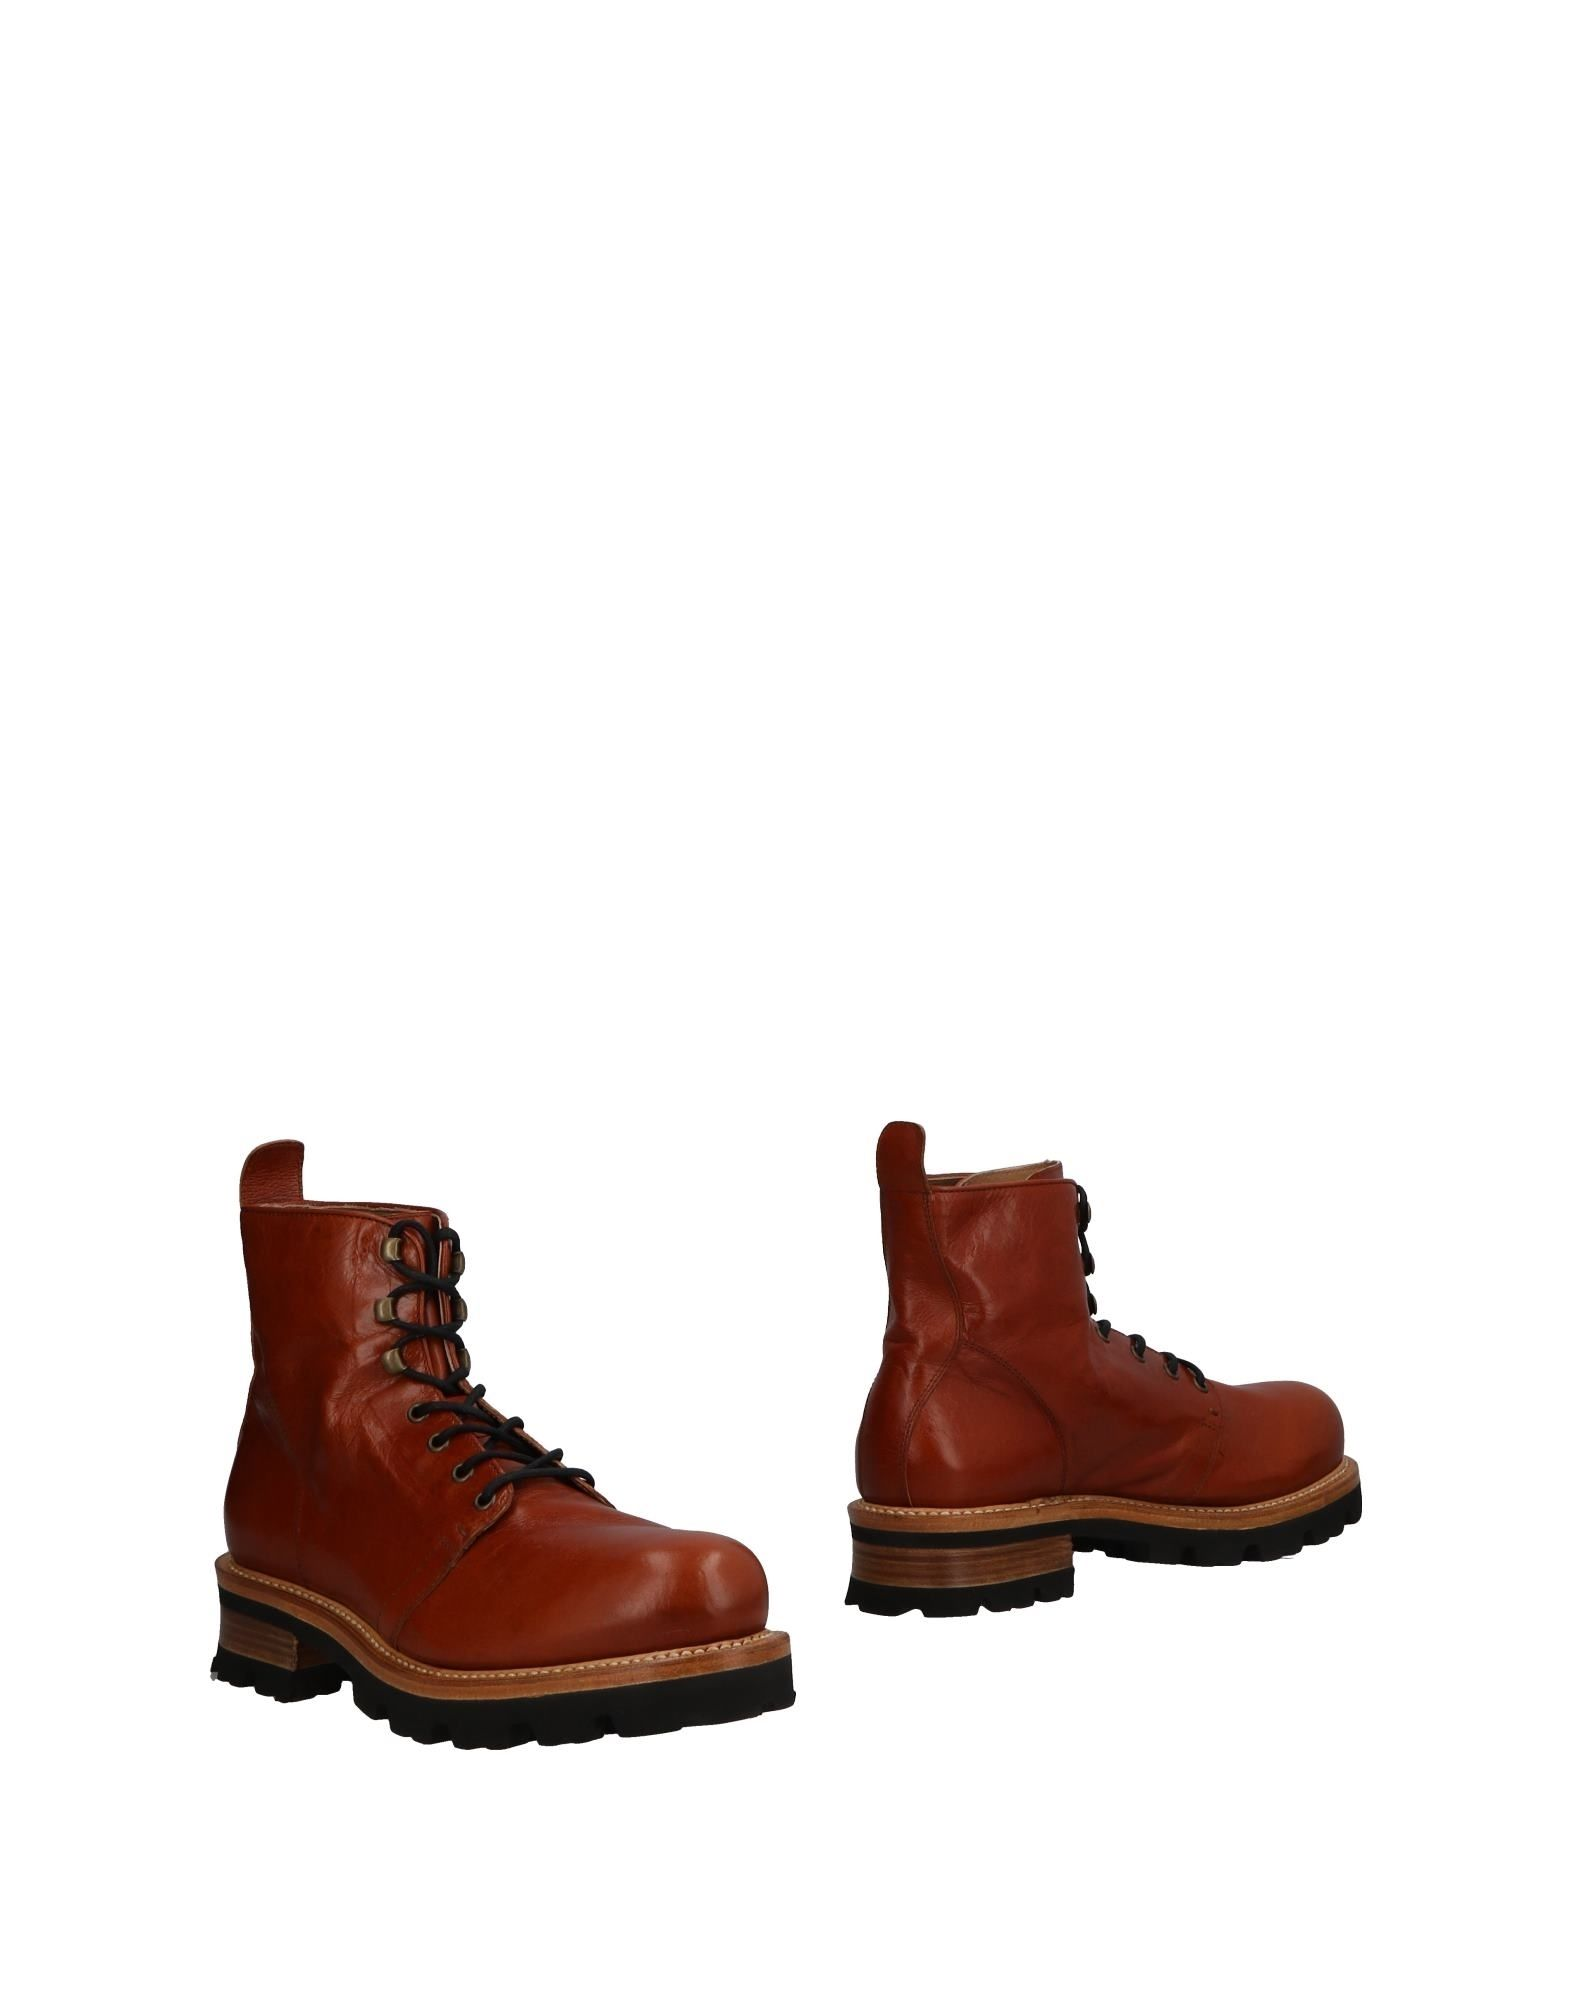 CAPPELLETTI Boots in Brown